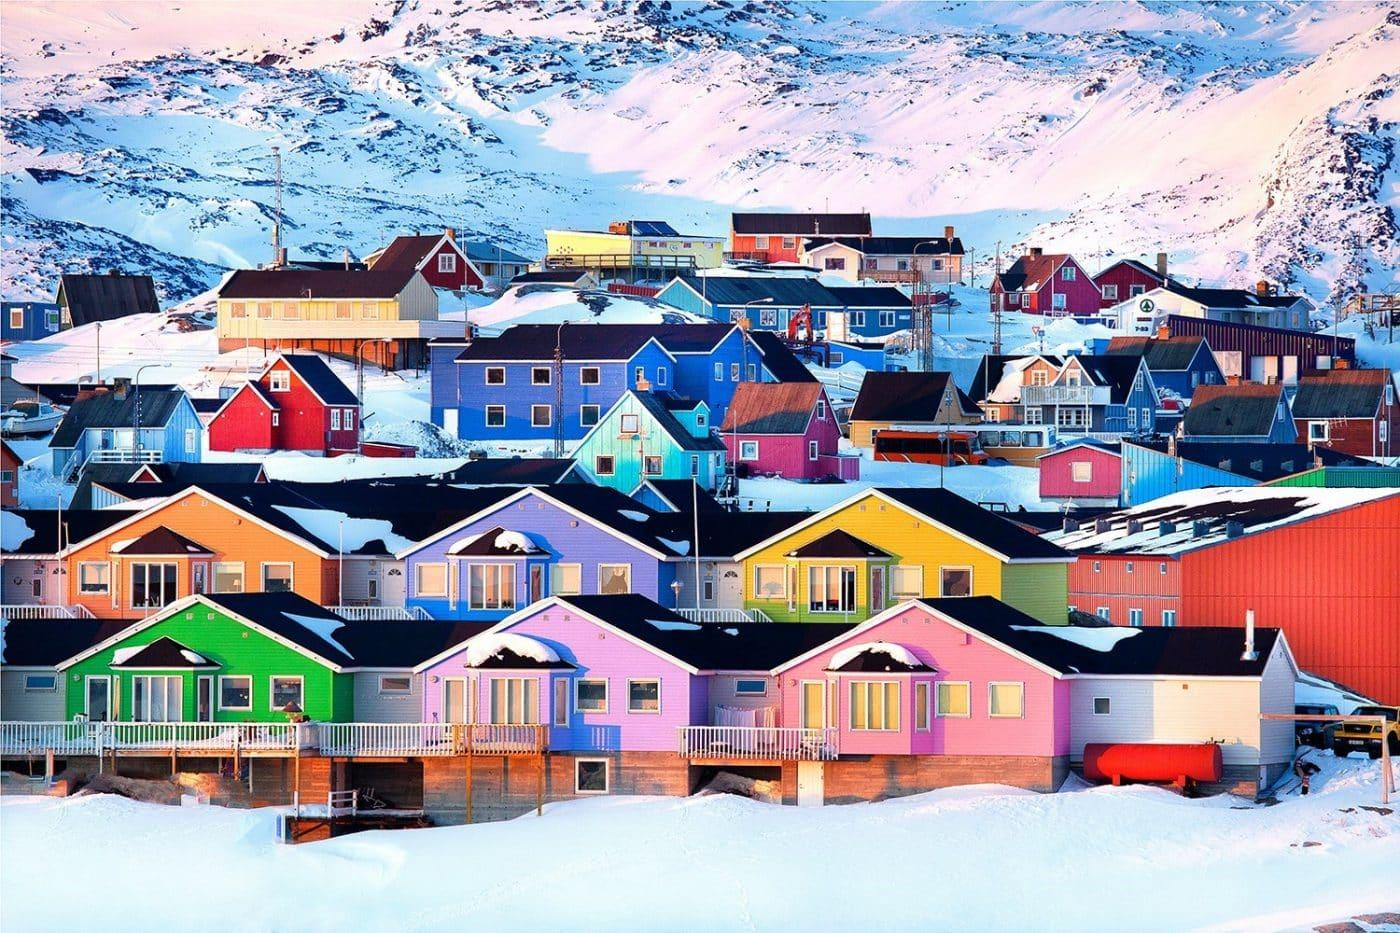 Colourful houses seen during coastal sailing. By Marcela Cardenas